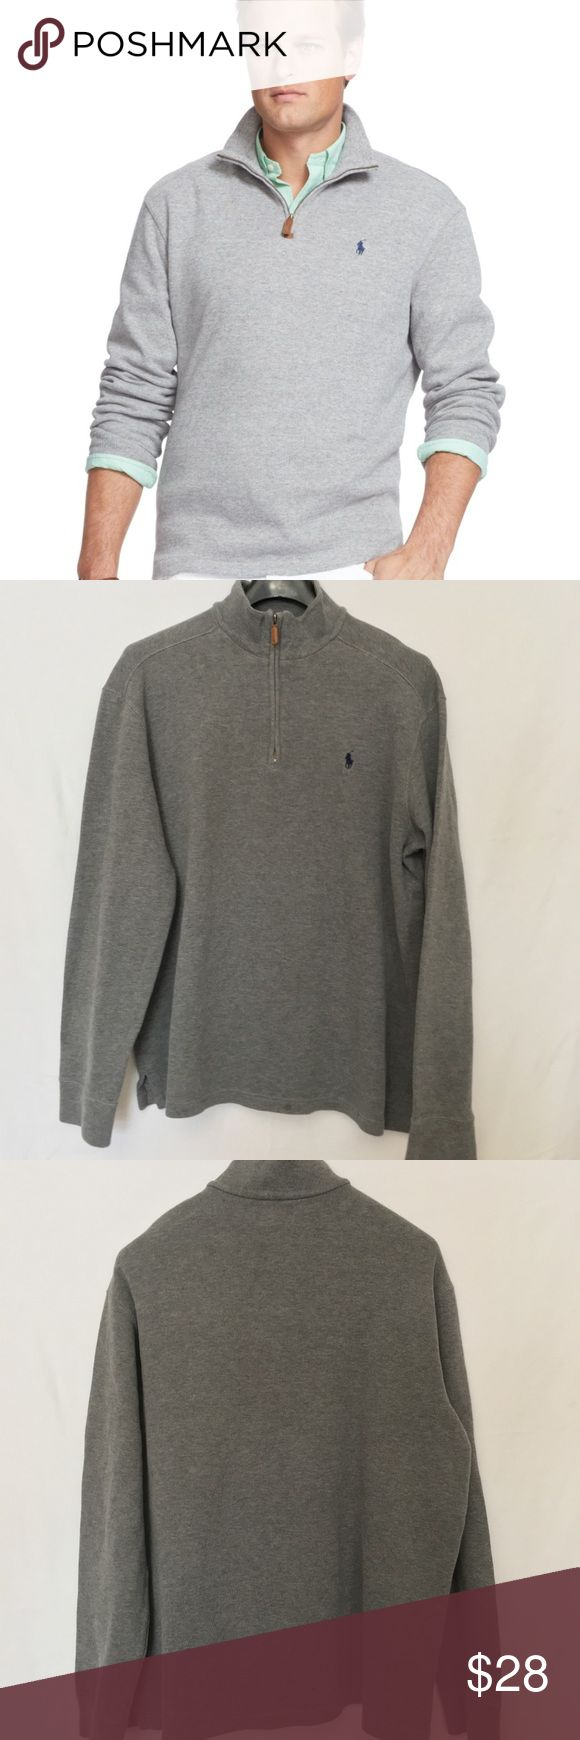 "Polo Ralph Lauren Half Zip French Rib Shirt XL Polo Ralph Lauren Mens Gray Half Zip Long Sleeve French Rib Shirt Sweatshirt XL 100% Cotton  Size XL MEASUREMENTS  LENGTH 28"" SLEEVES 27"" UNDERARM TO UNDERARM 24.5"" Excellent, nearly new condition with no stains or holes. Polo by Ralph Lauren Shirts Sweatshirts & Hoodies"